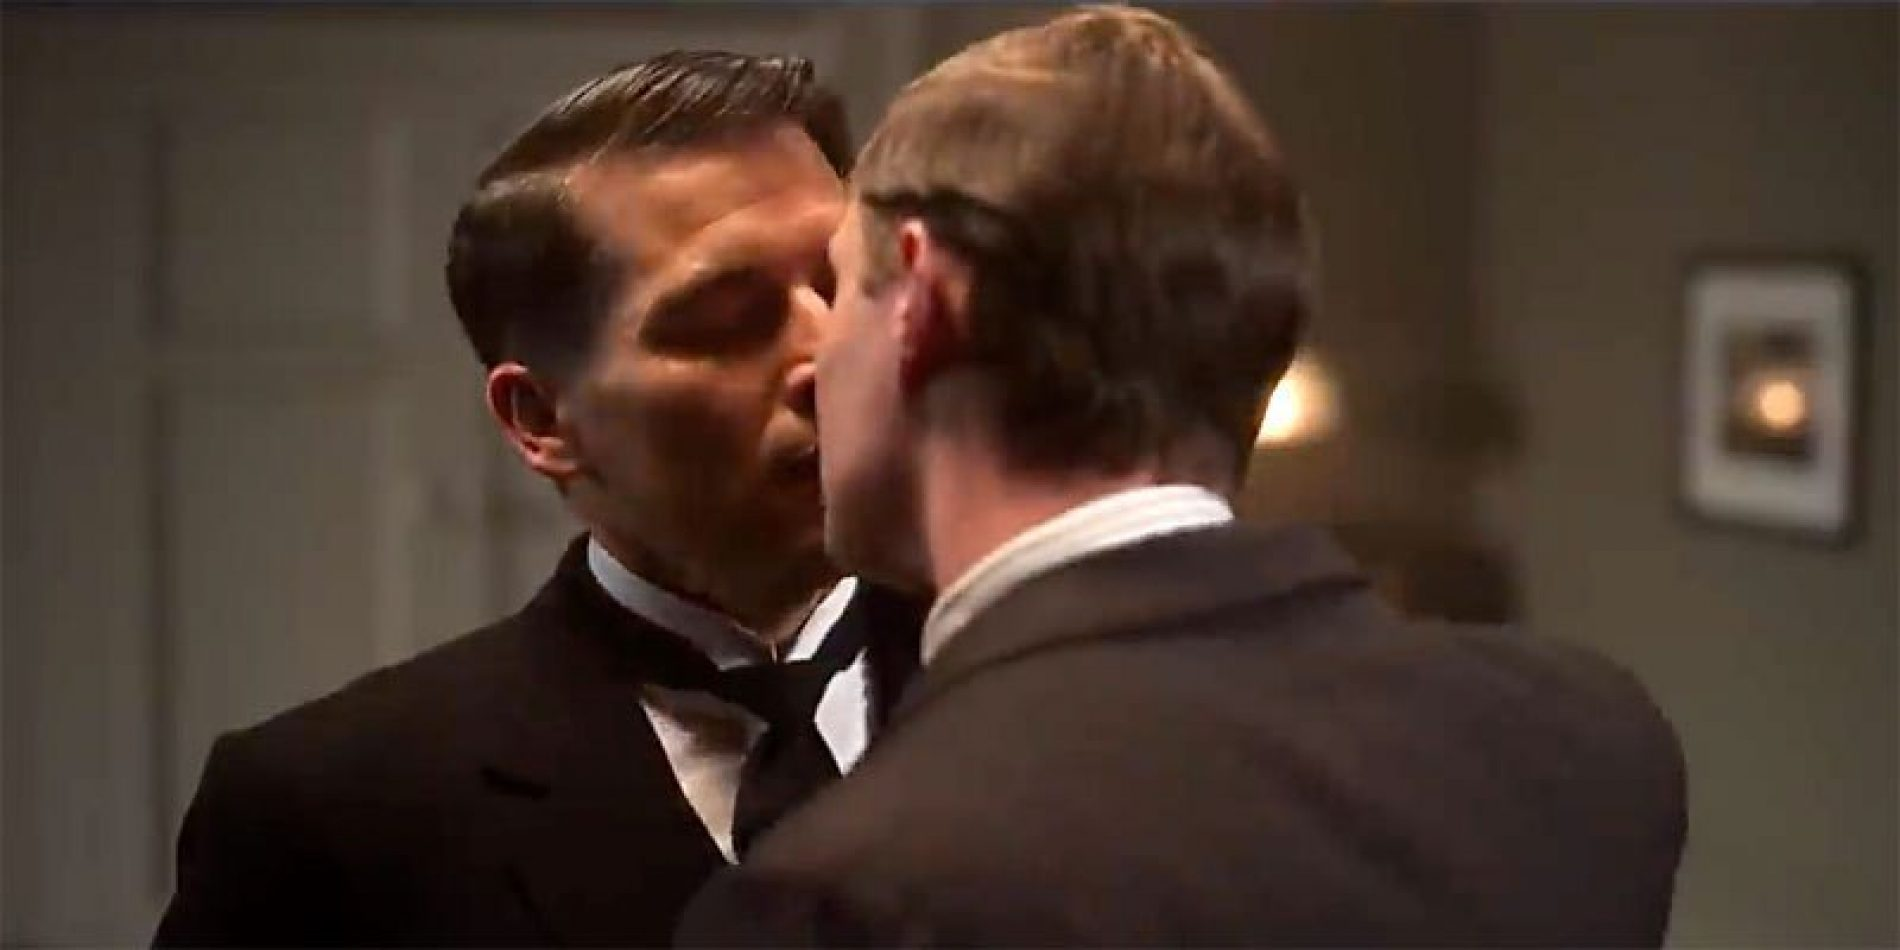 The trailer for the Downton Abbey movie drops, and there's some same-sex lip-locking